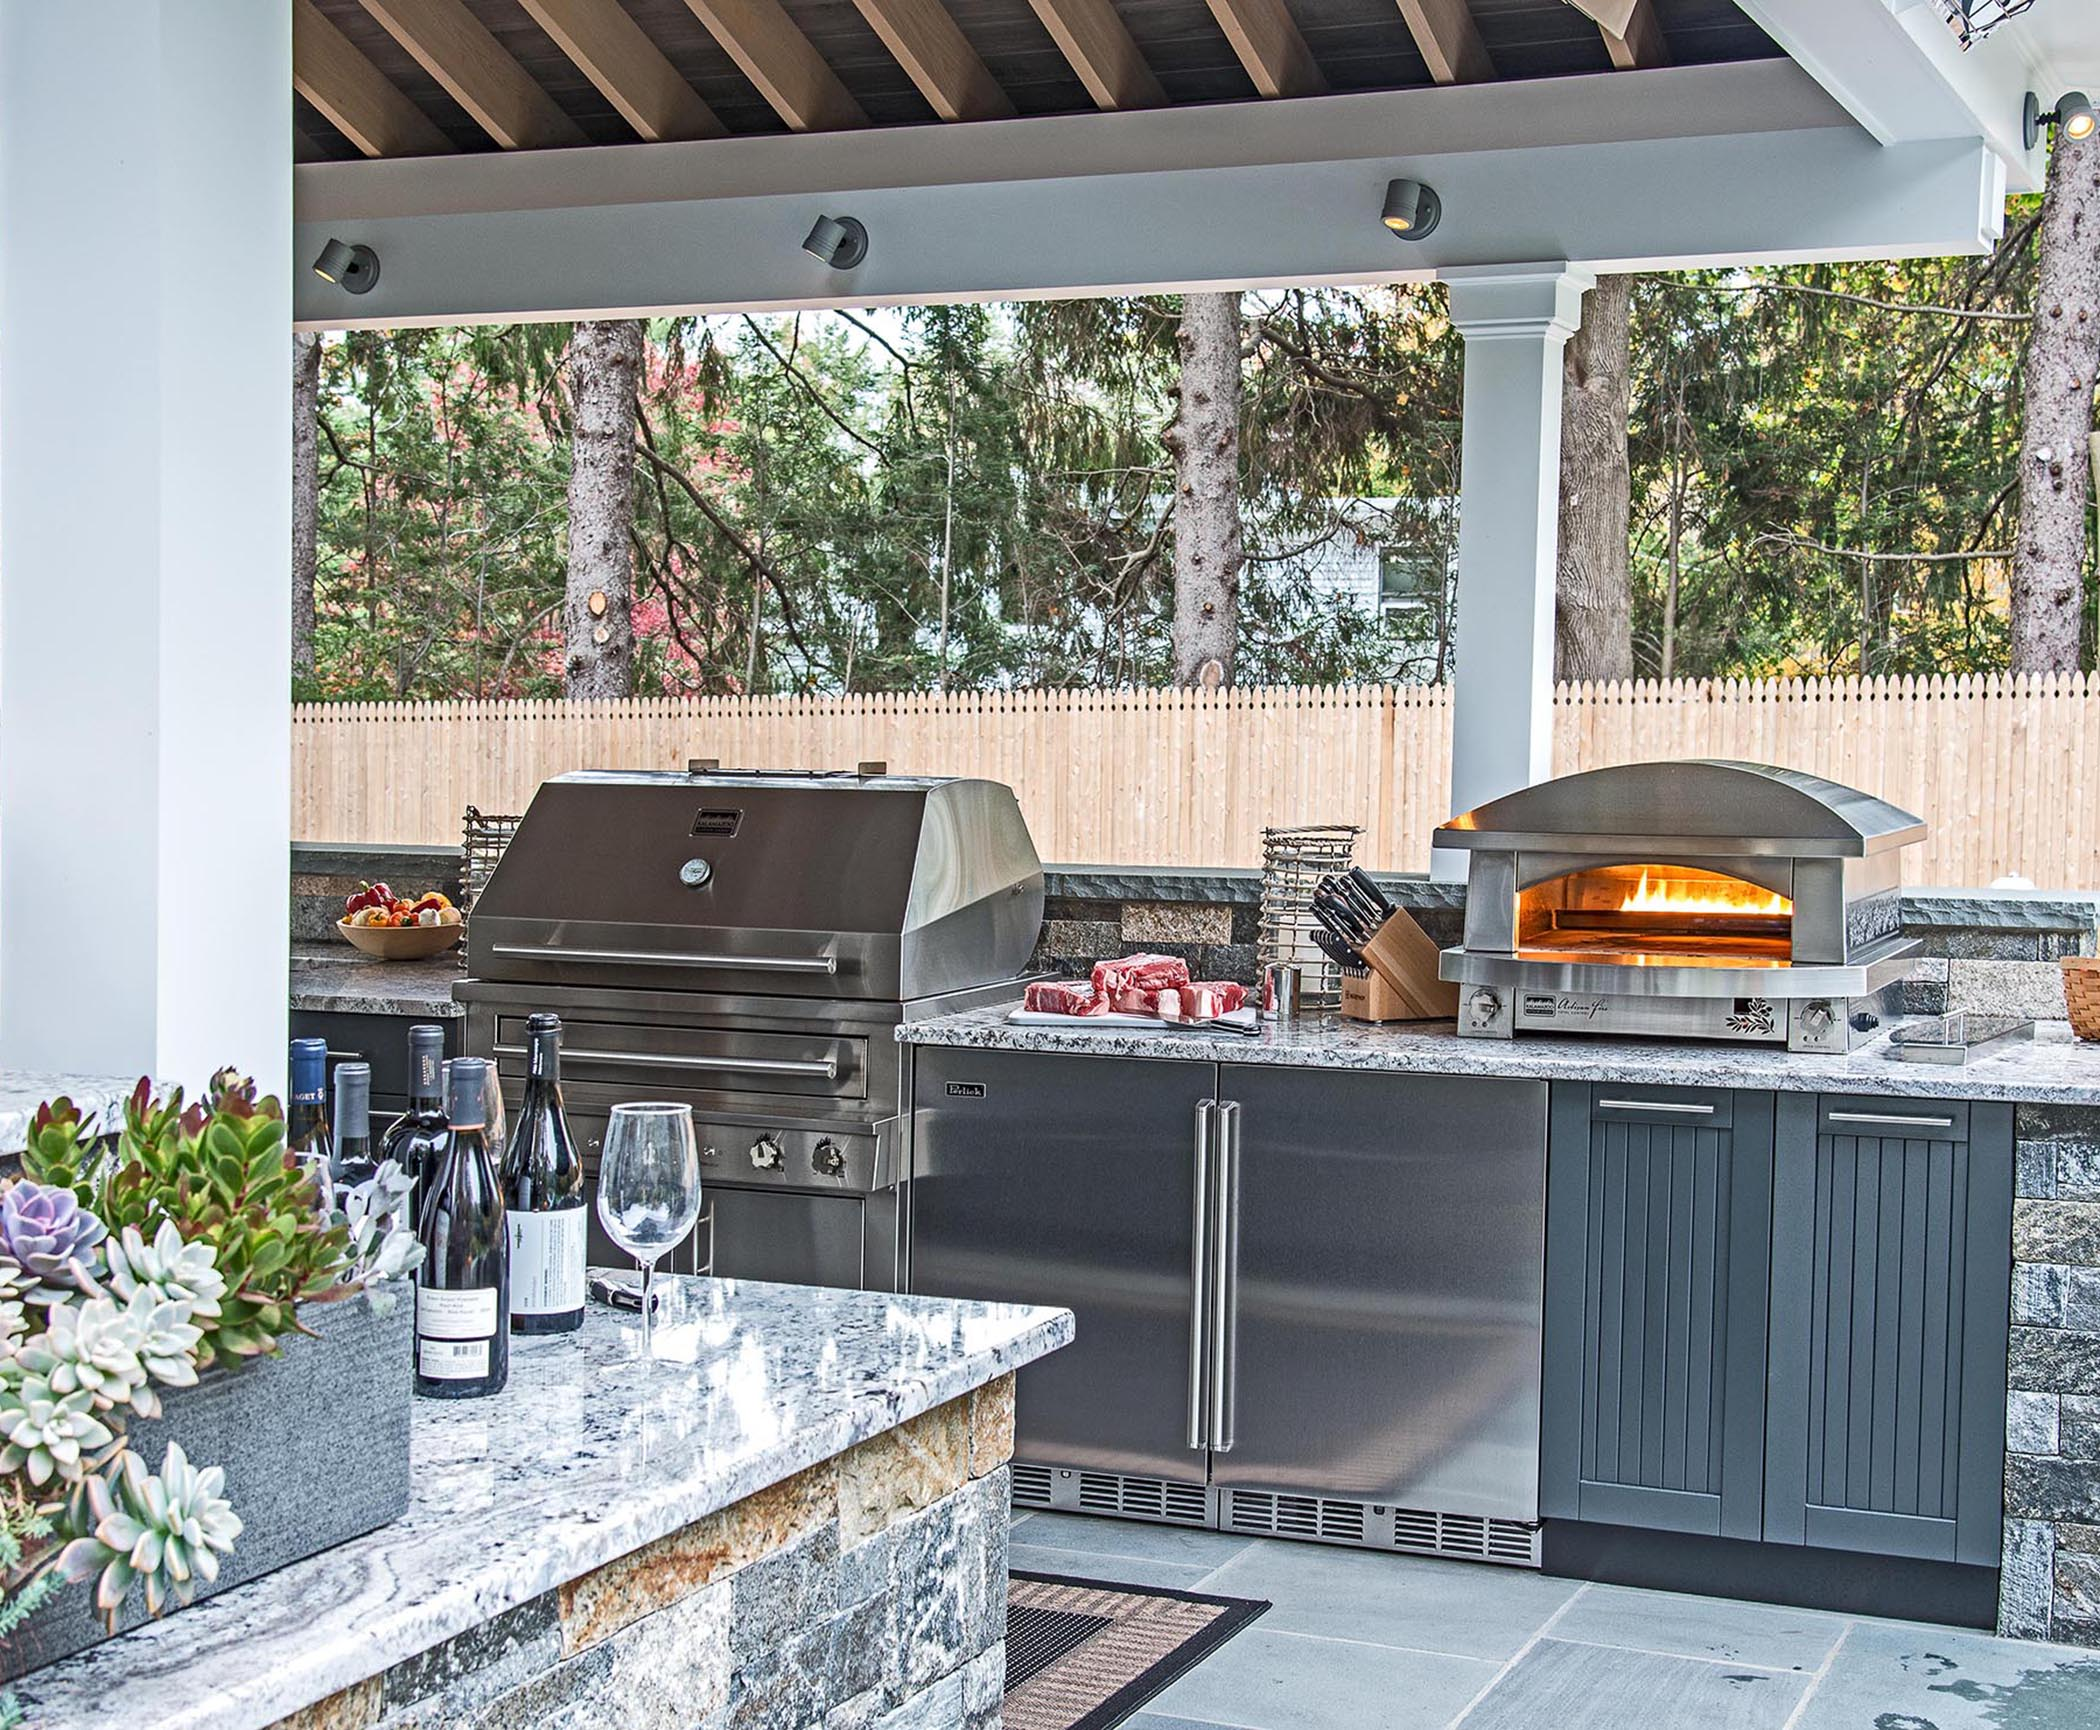 Outdoor Kitchen for Your Patio - Design Build Planners on Patio Kitchen Designs id=38540